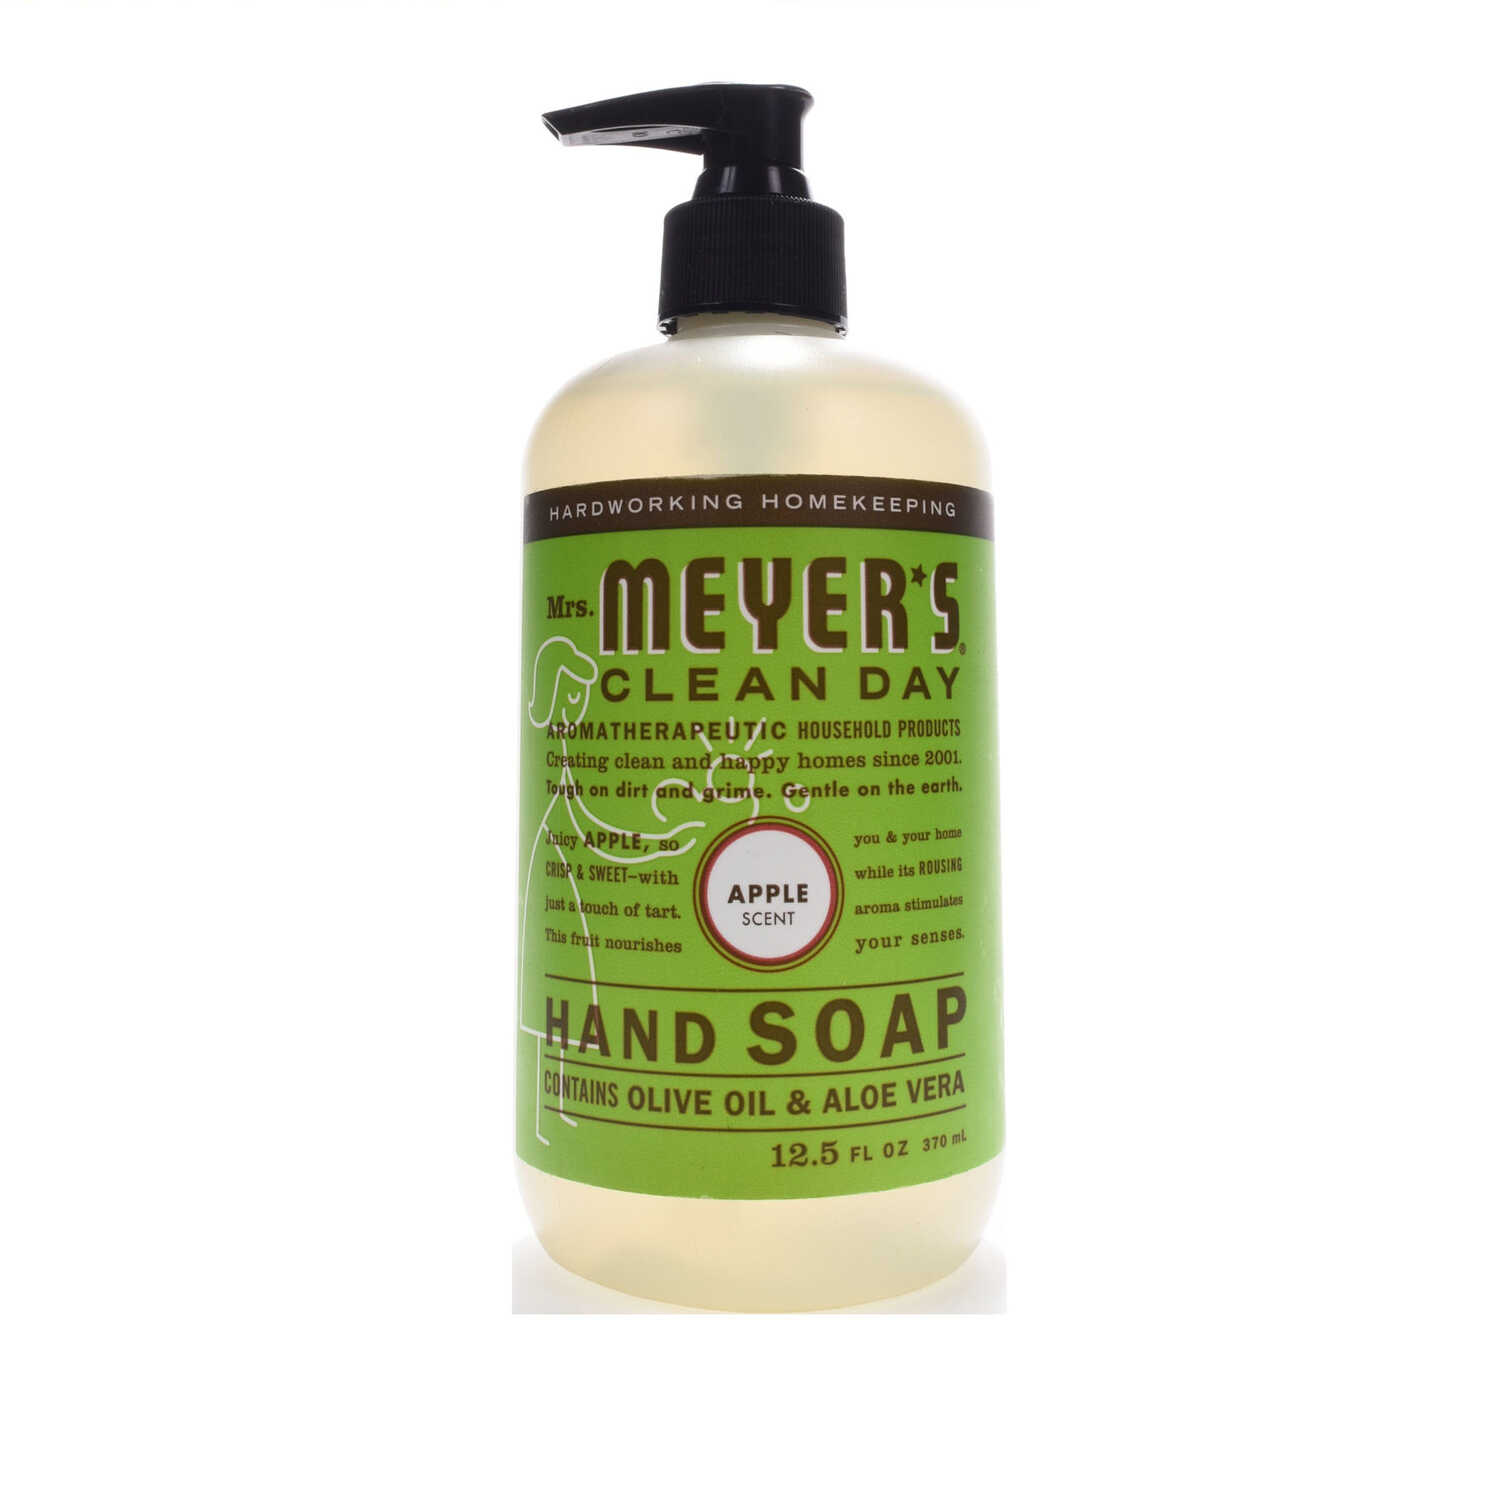 Mrs. Meyer's  Clean Day  Organic Liquid Hand Soap  12.5  Apple Scent